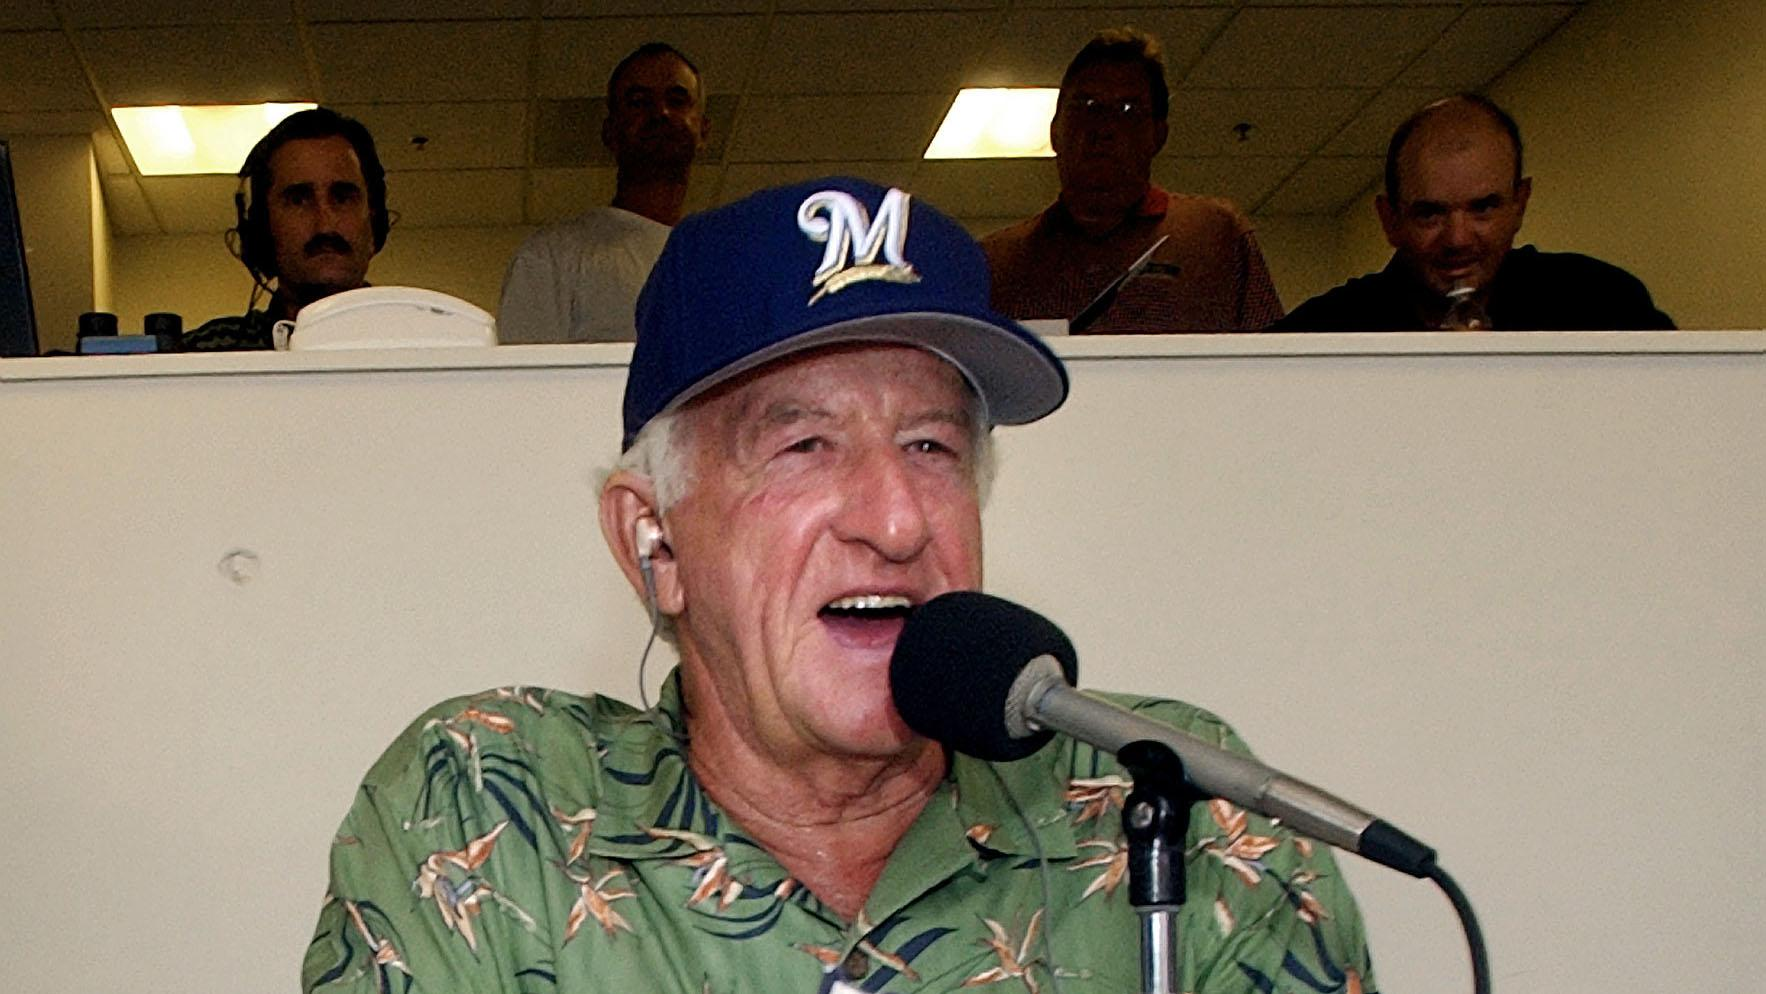 Get your fix of life advice with the @Brewers' Bob Uecker Magic 8-Ball giveaway. https://t.co/vZGxEilEAJ https://t.co/p4odgK3paq